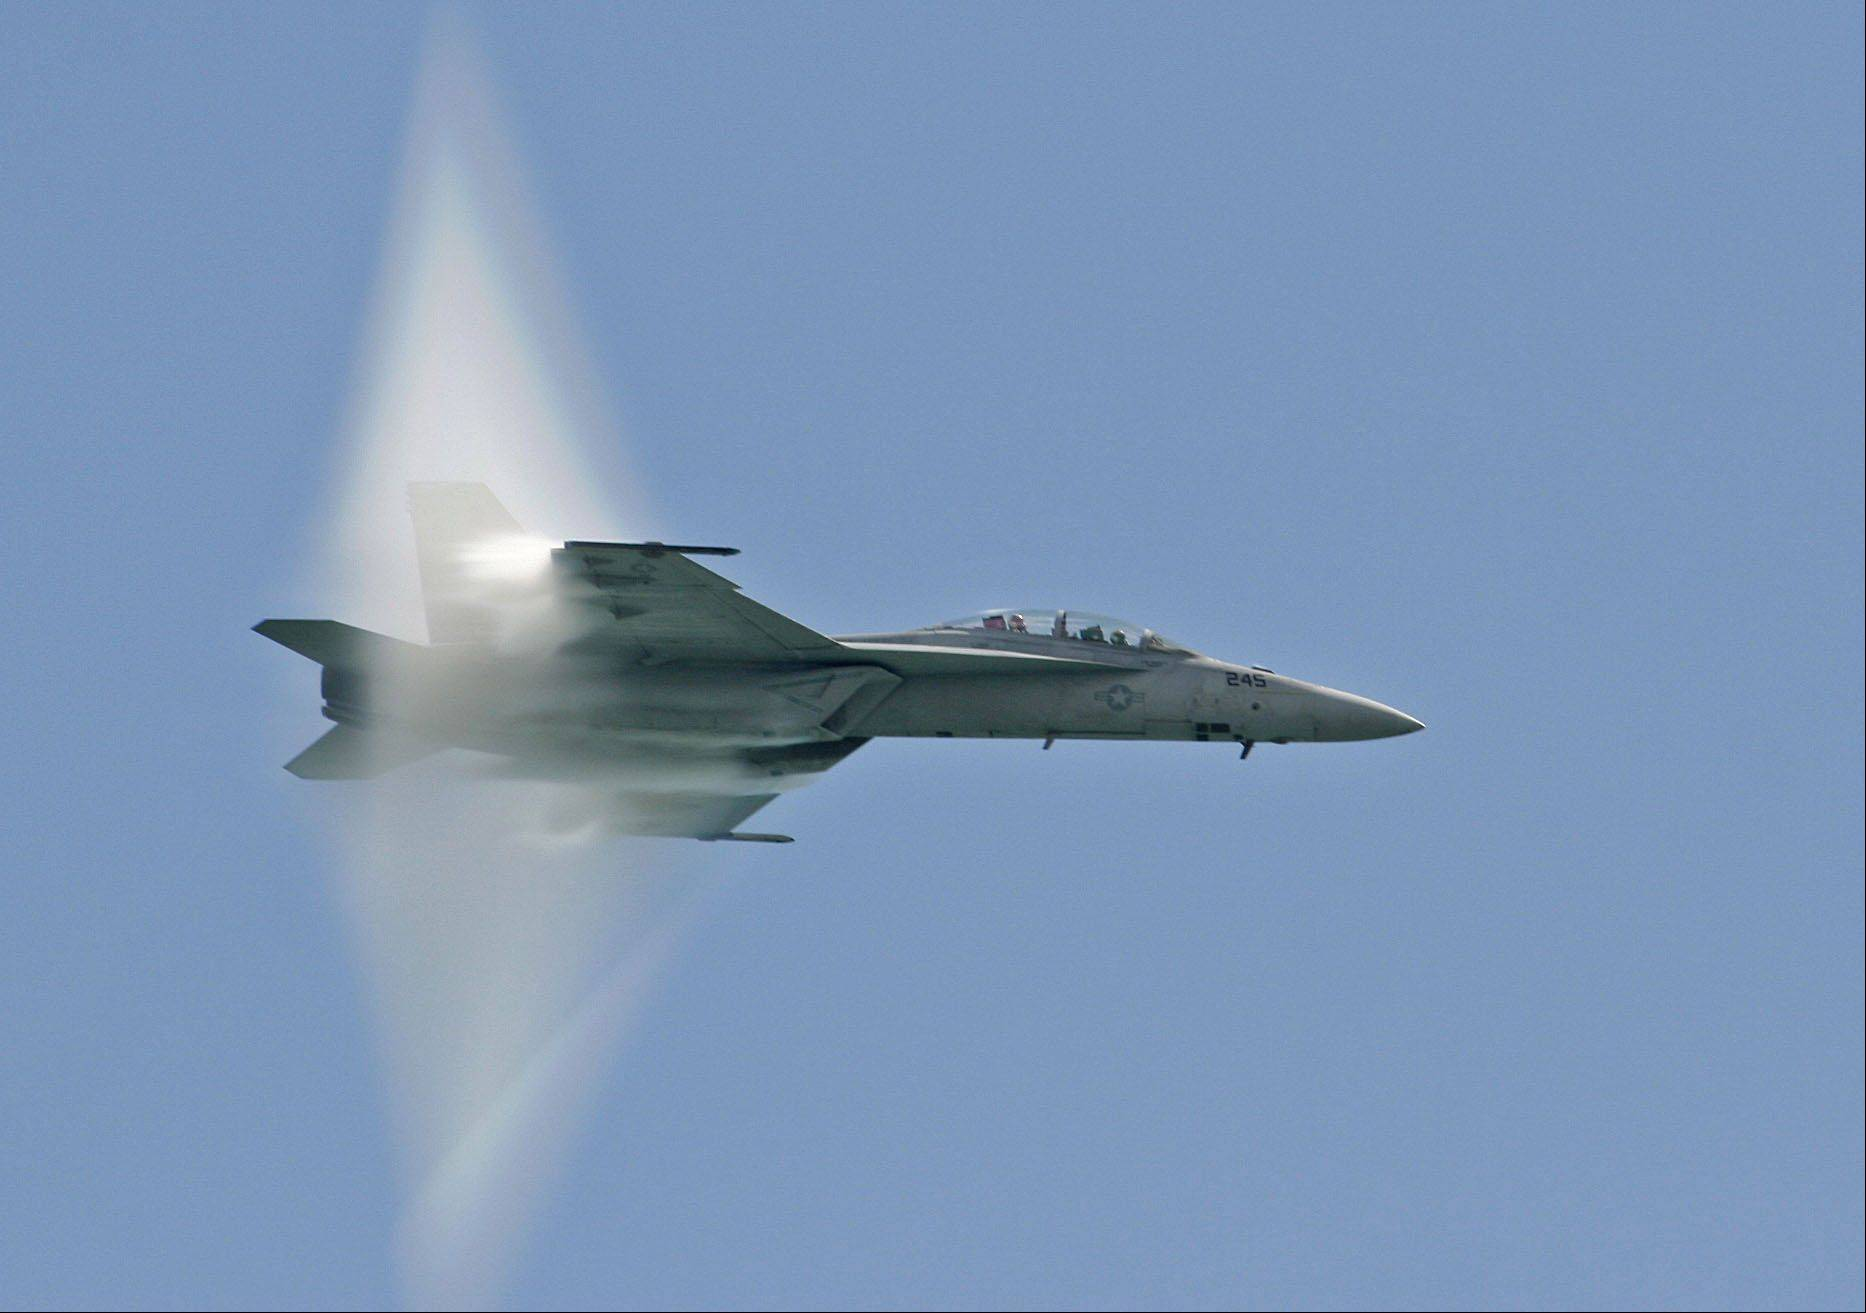 An Air Force jet creates an interesting effect during the Air & Water Show on Friday, August 17, 2012.